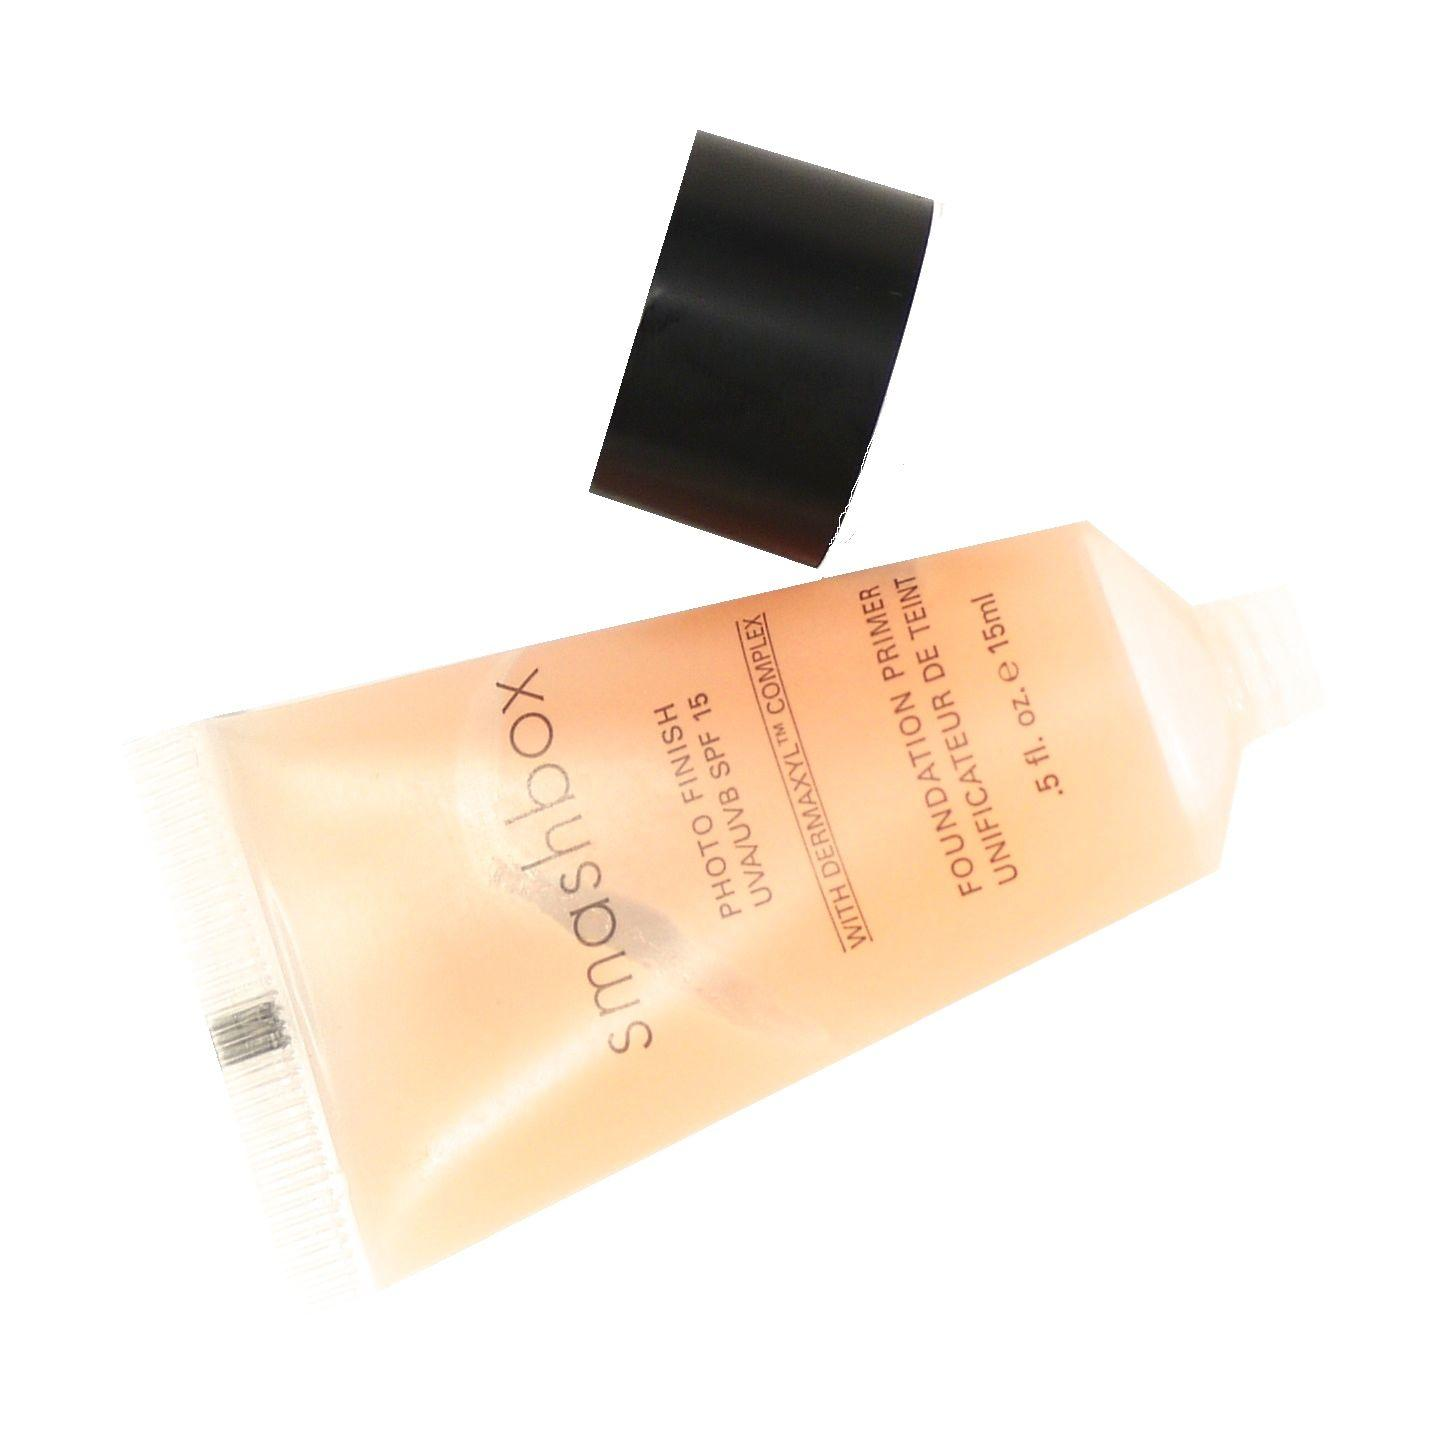 Smashbox Foundation Primer Photo Finish With Dermaxyl Complex Mini